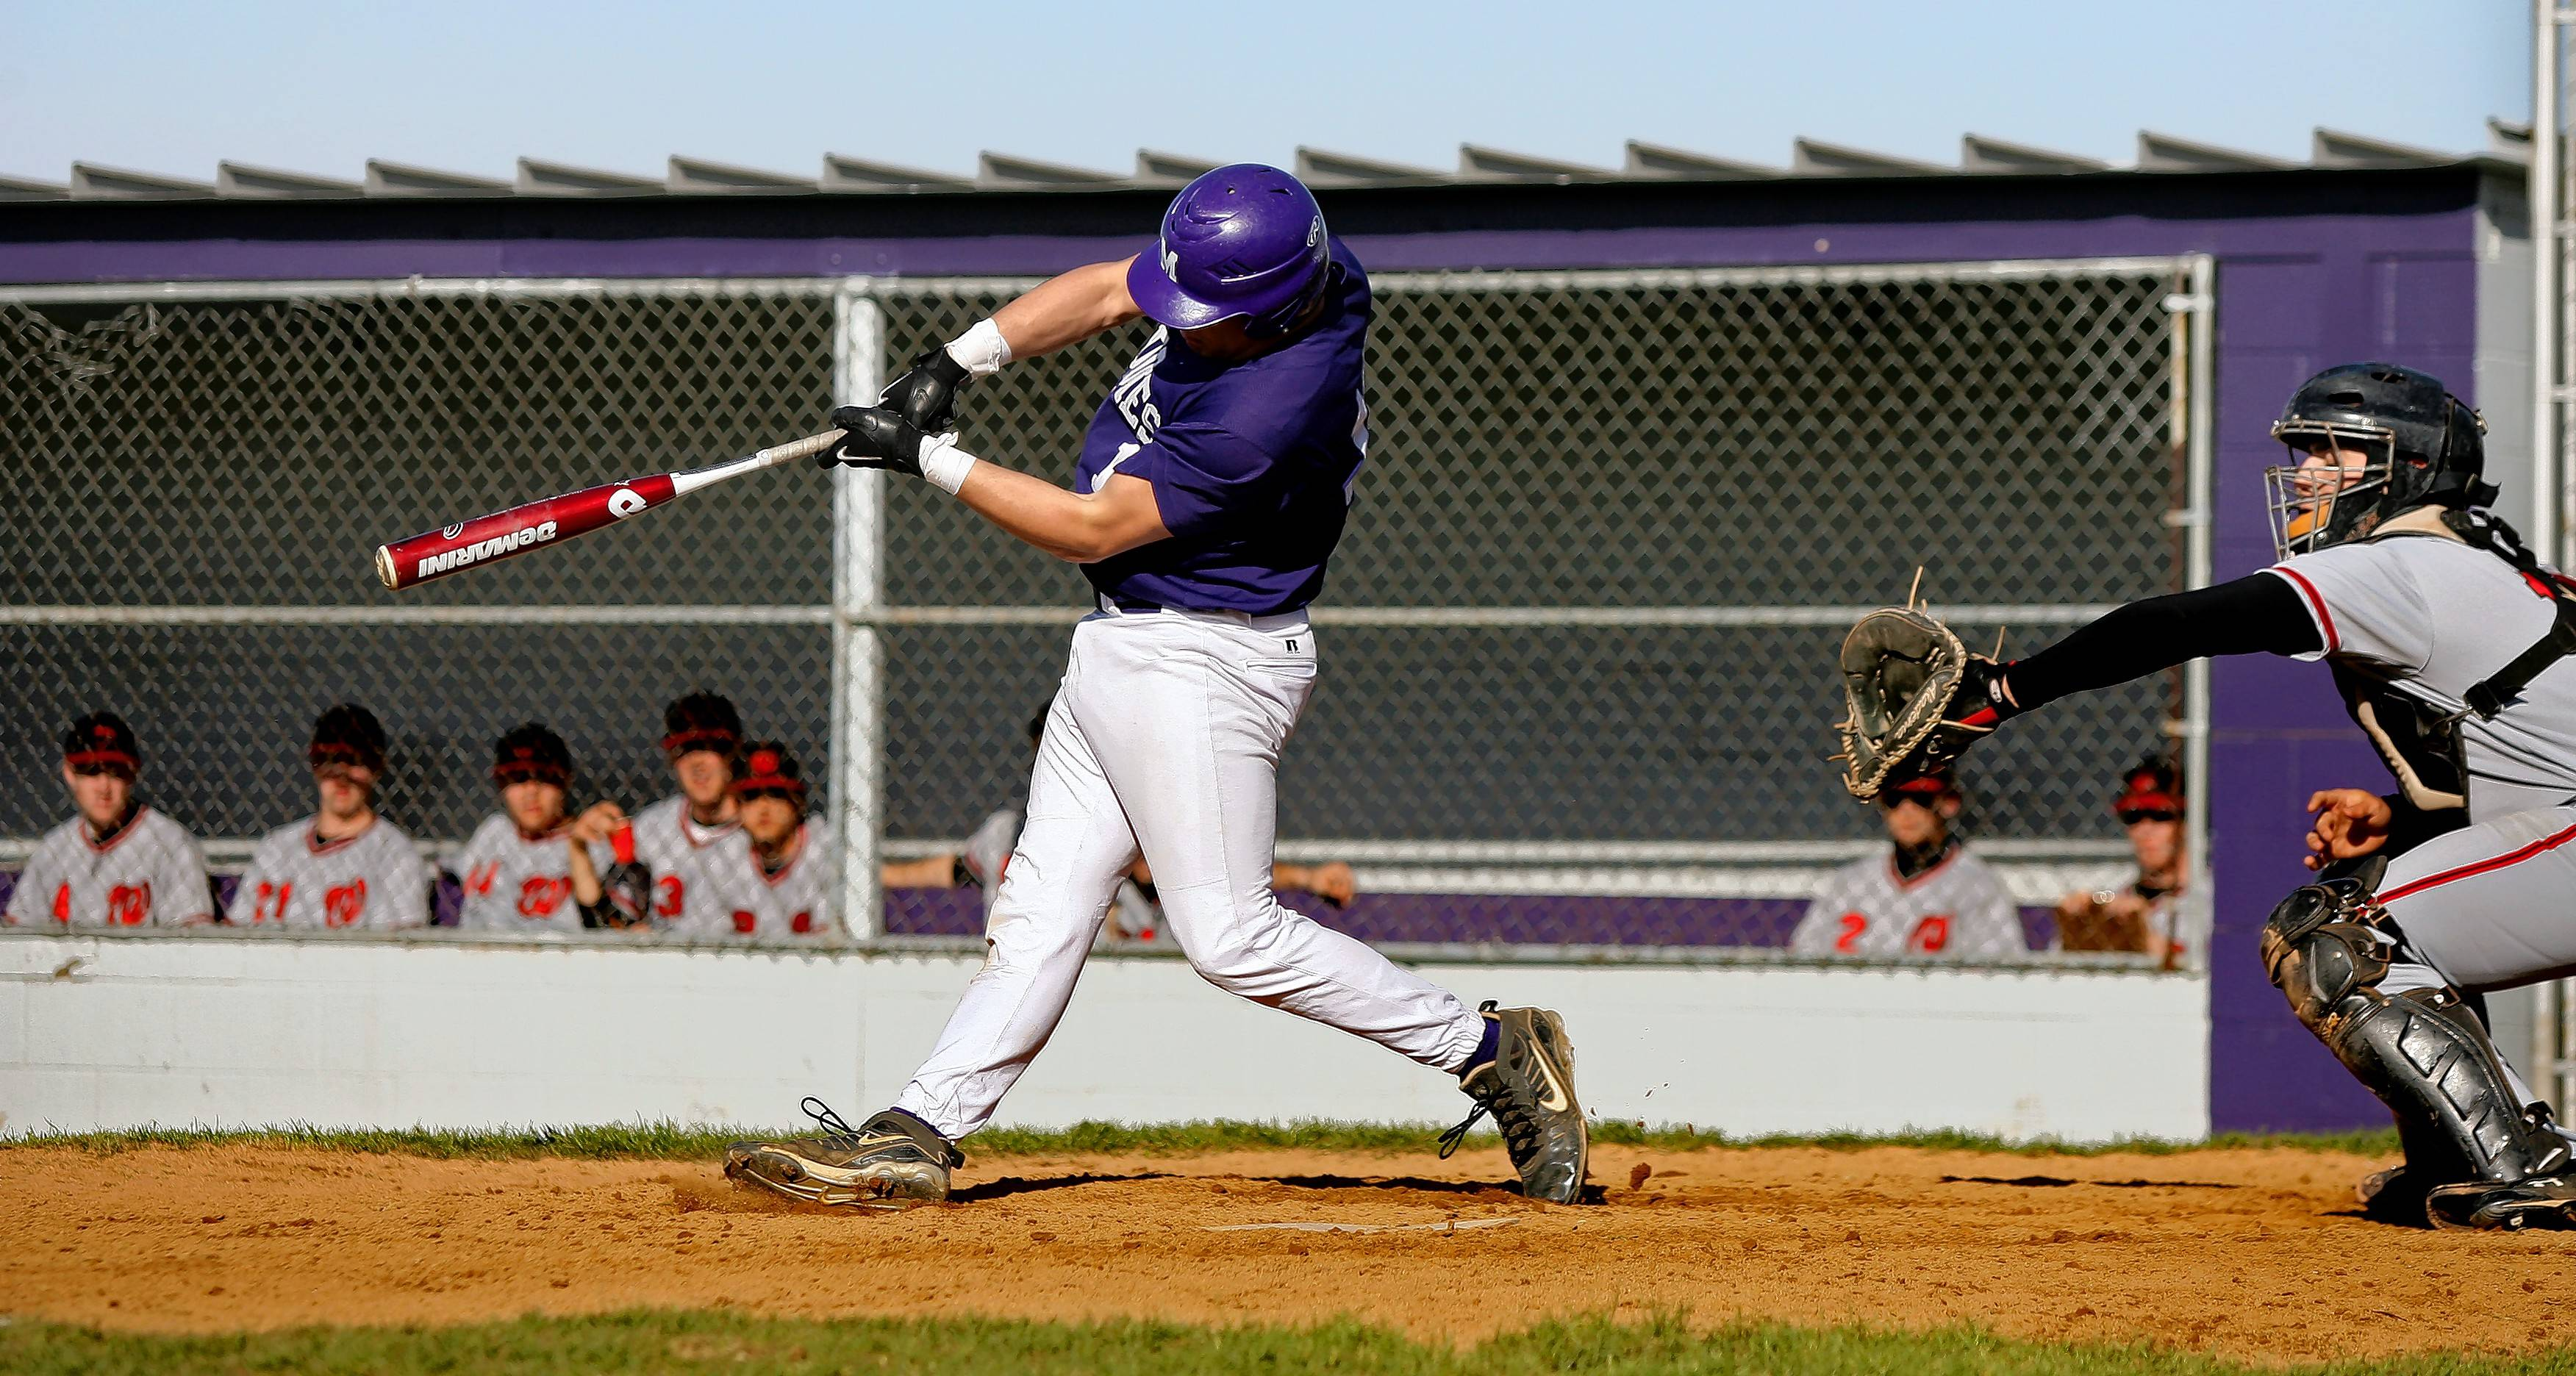 Kyle Schwarber was a senior for Middletown High School when he drilled this three-run home run against Lakota West on April 6, 2011.